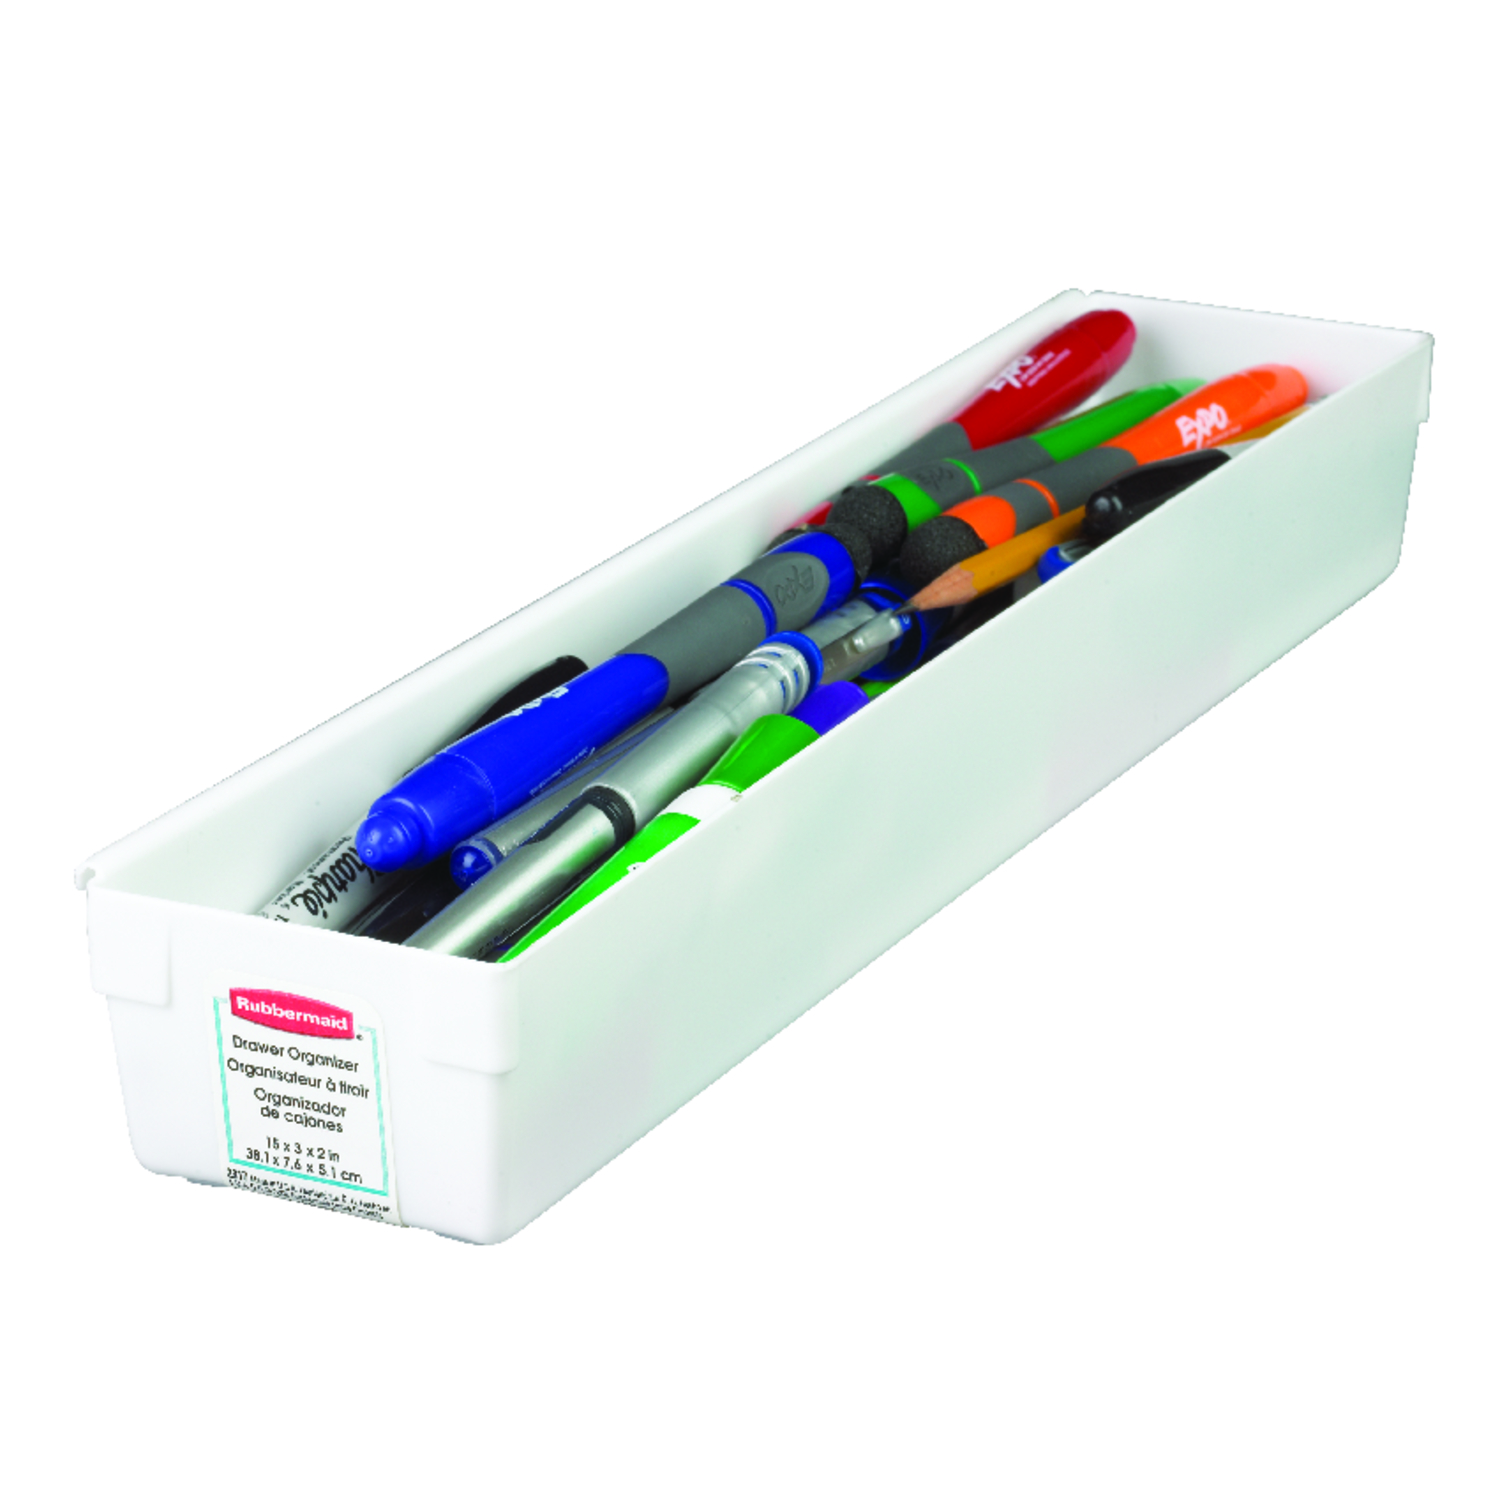 Rubbermaid  2 in. H x 15 in. L x 3 in. W Drawer Organizer  Plastic  White